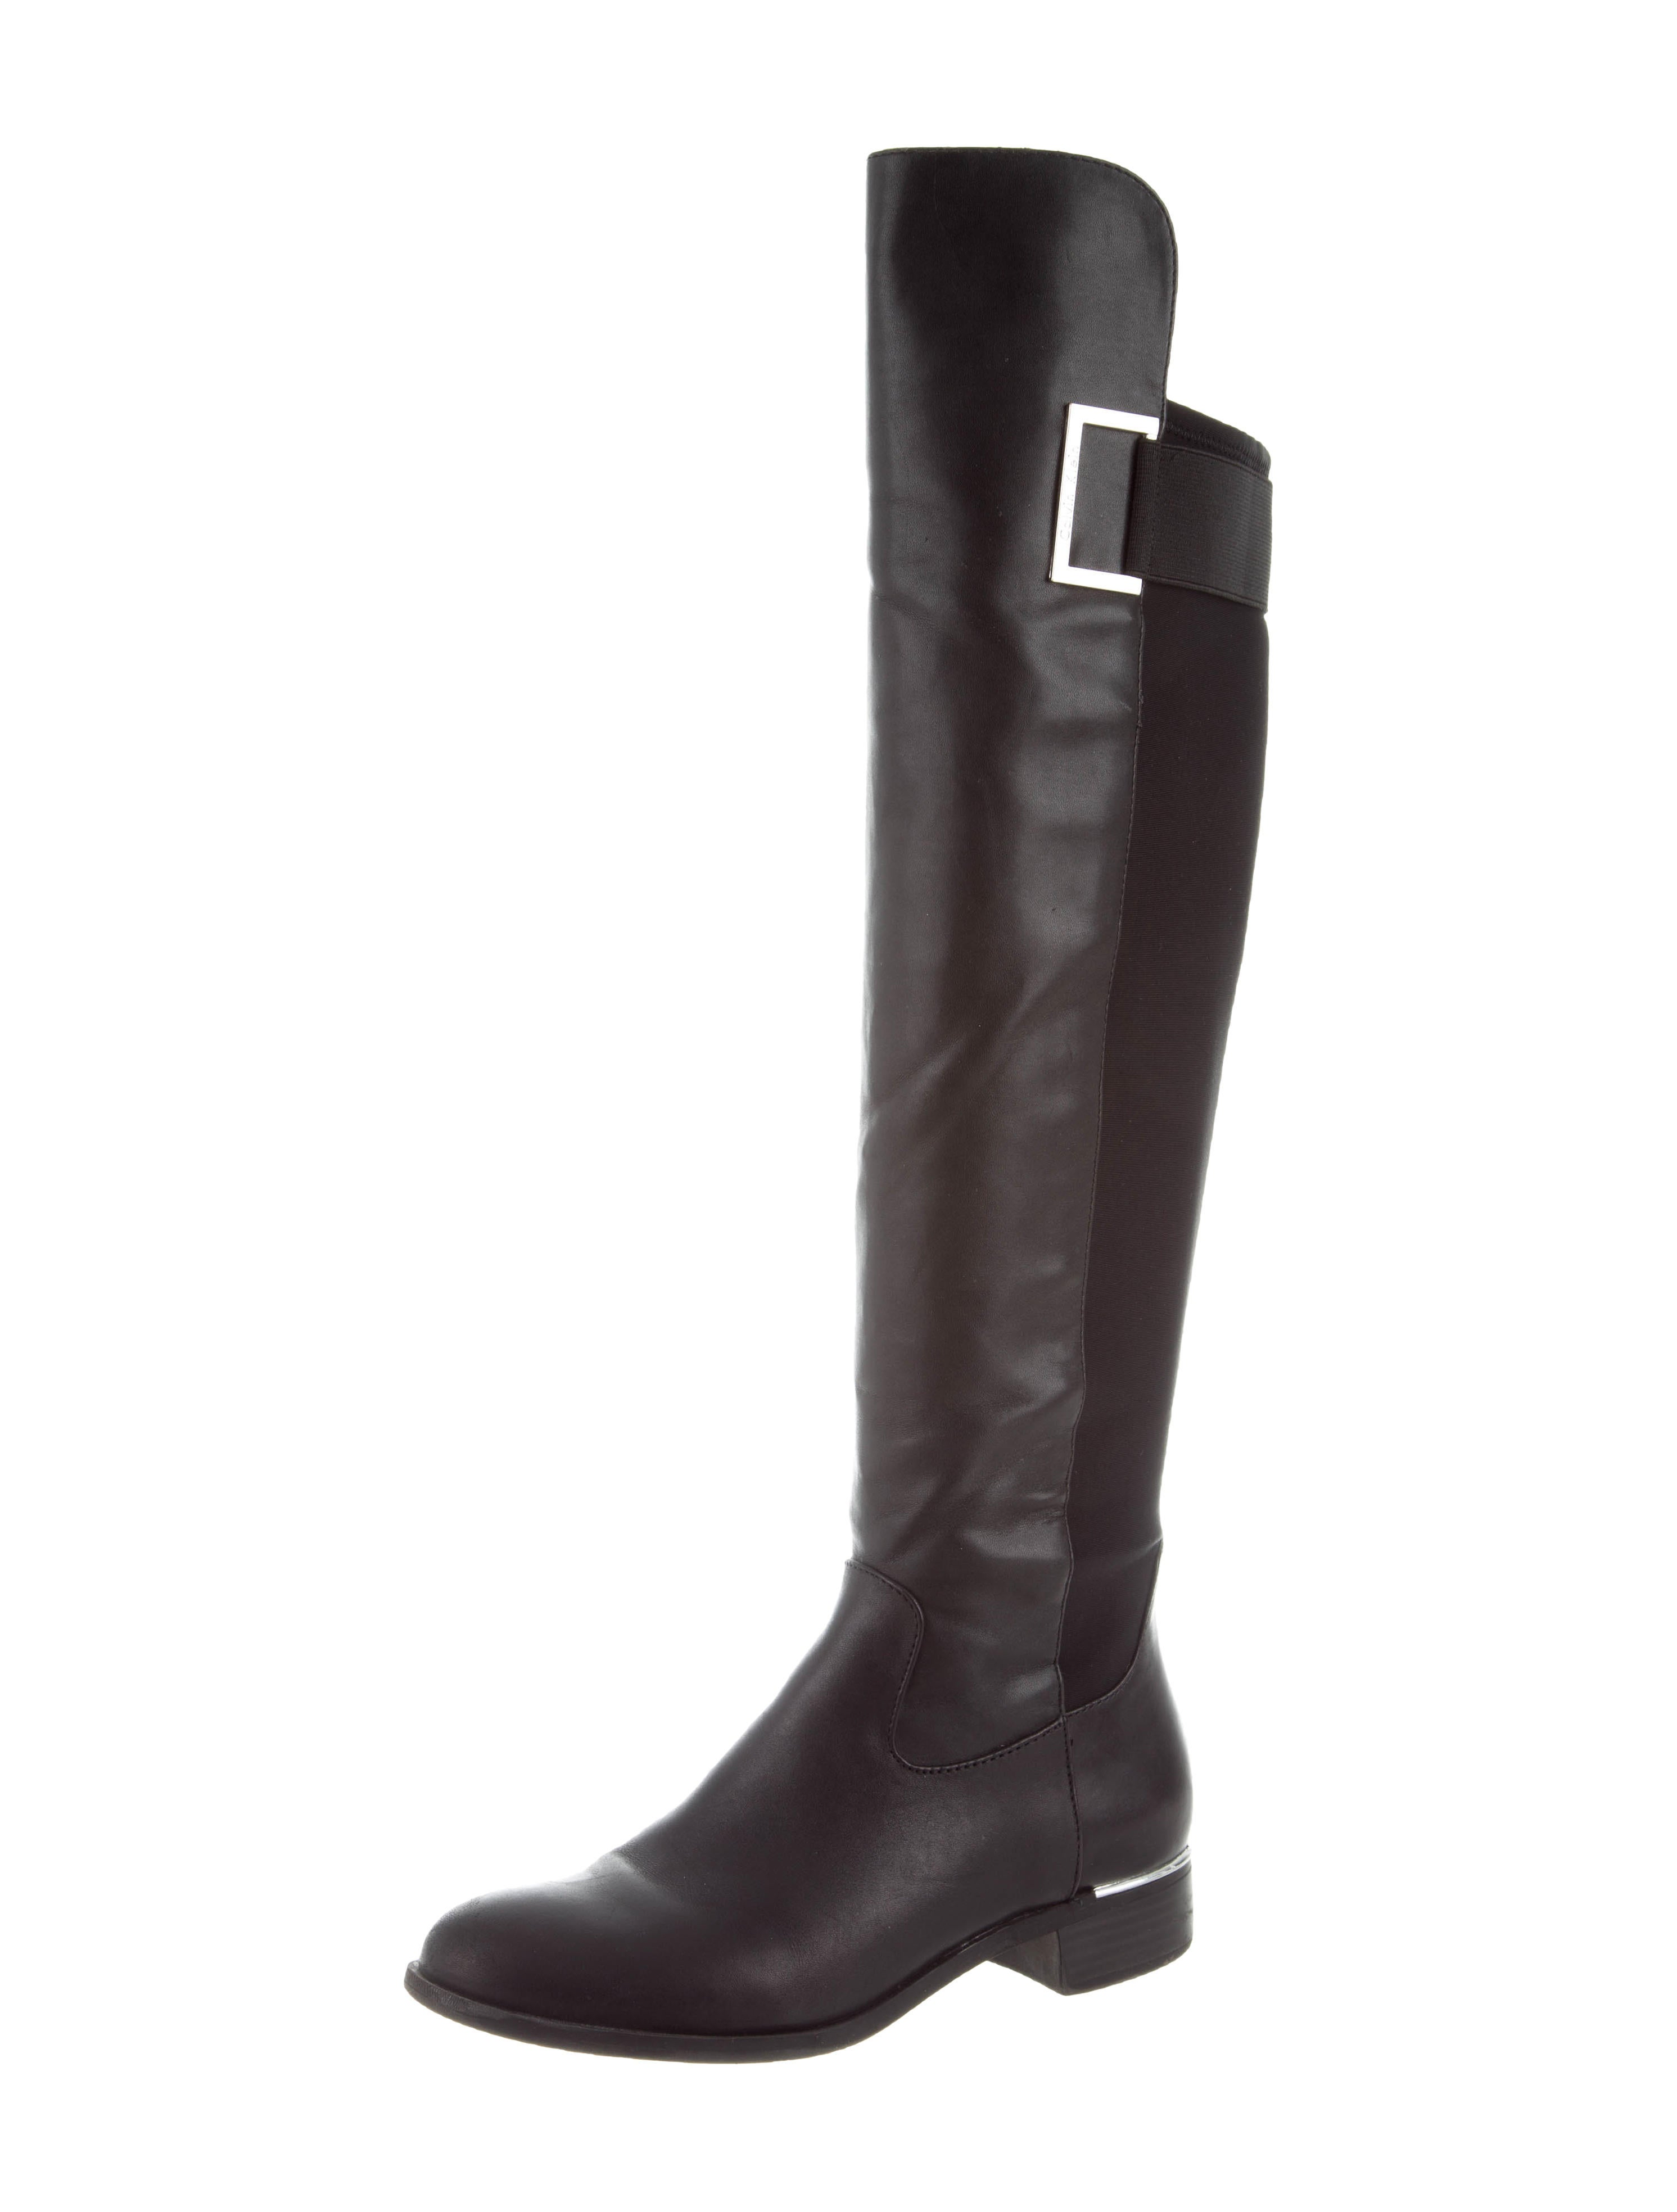 cheap price cost Calvin Klein Collection Round-Toe Over-The-Knee Boots buy cheap fashionable fashion Style cheap price free shipping hot sale uxes5rj